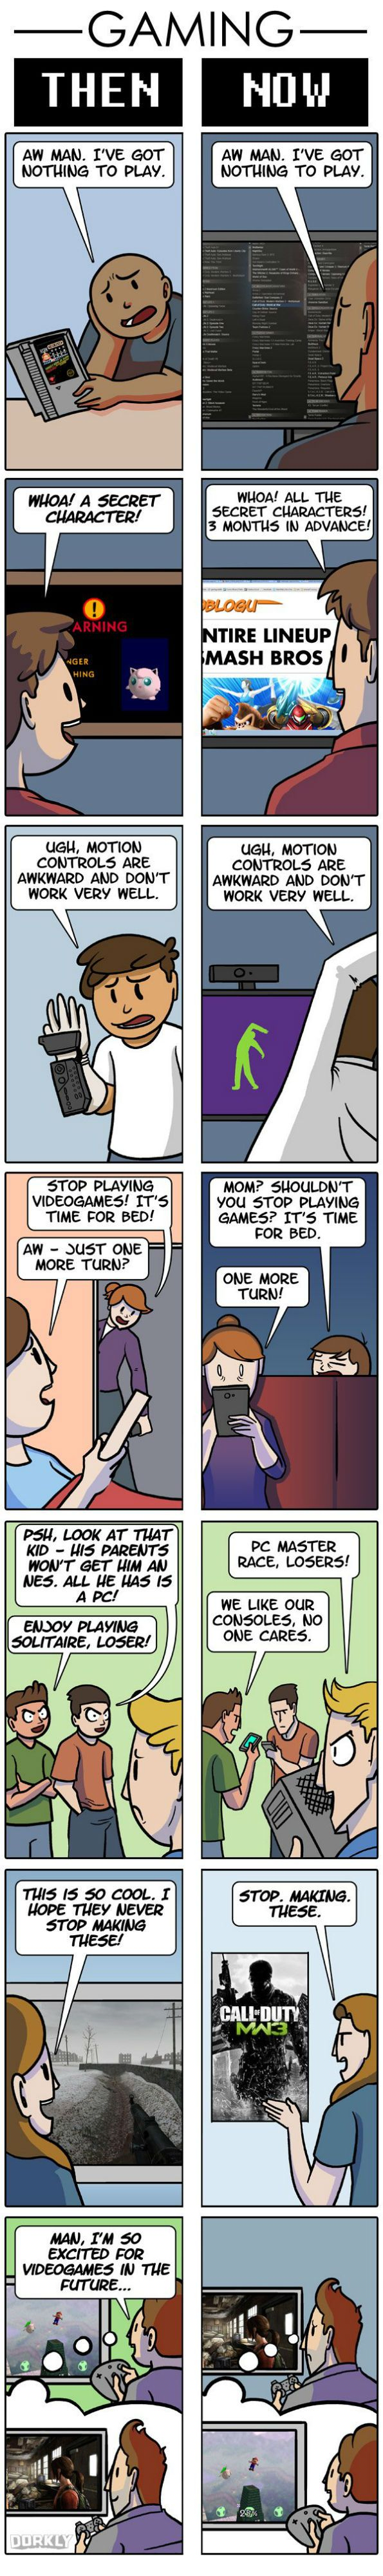 Gaming: then vs now